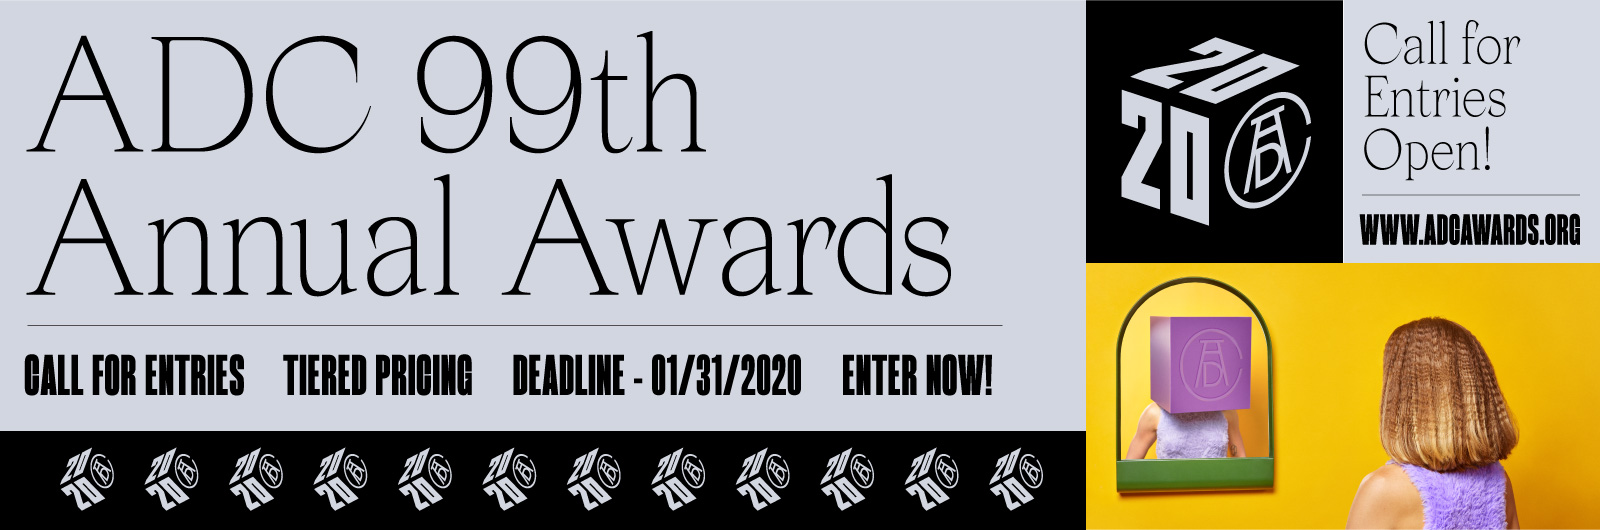 Only two weeks left to enter the ADC 99th Annual Awards – entry deadline Friday, January 31